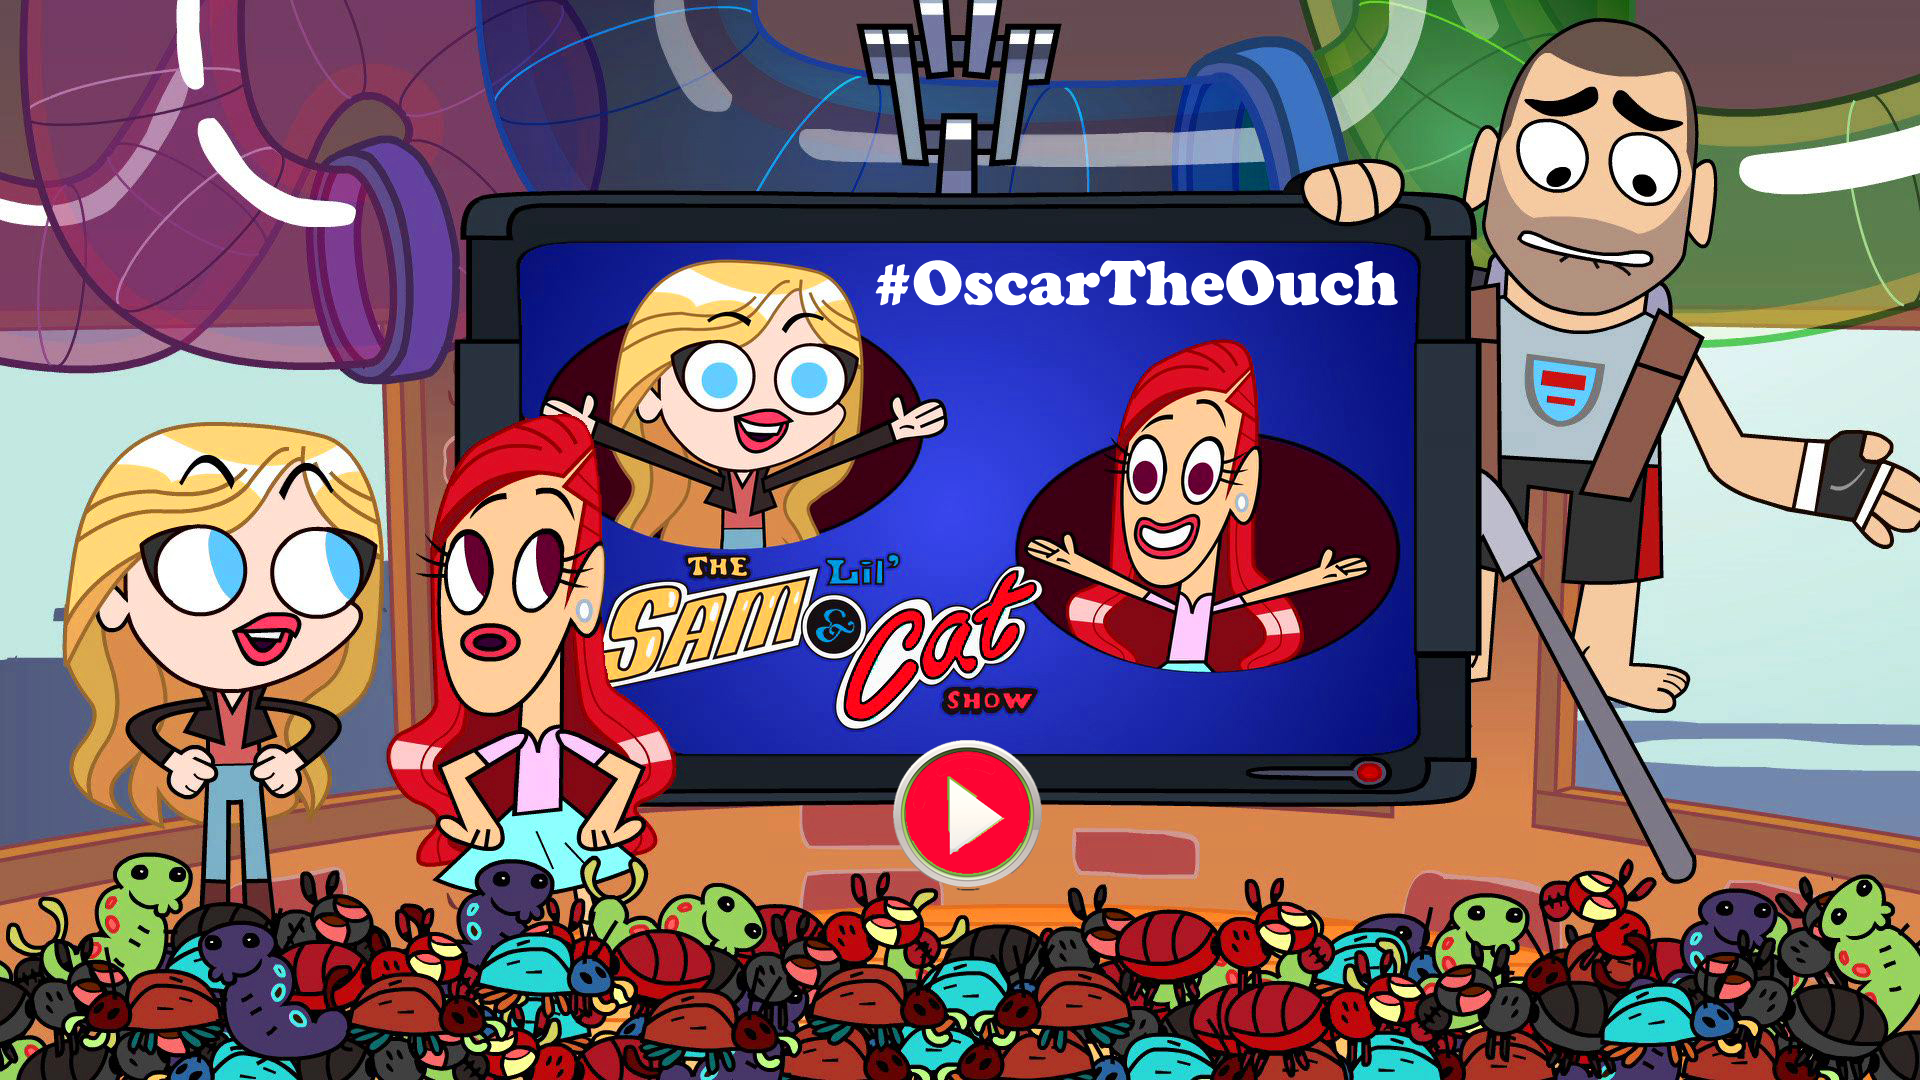 Lil' Sam & Cat Show: #OscarTheOuch